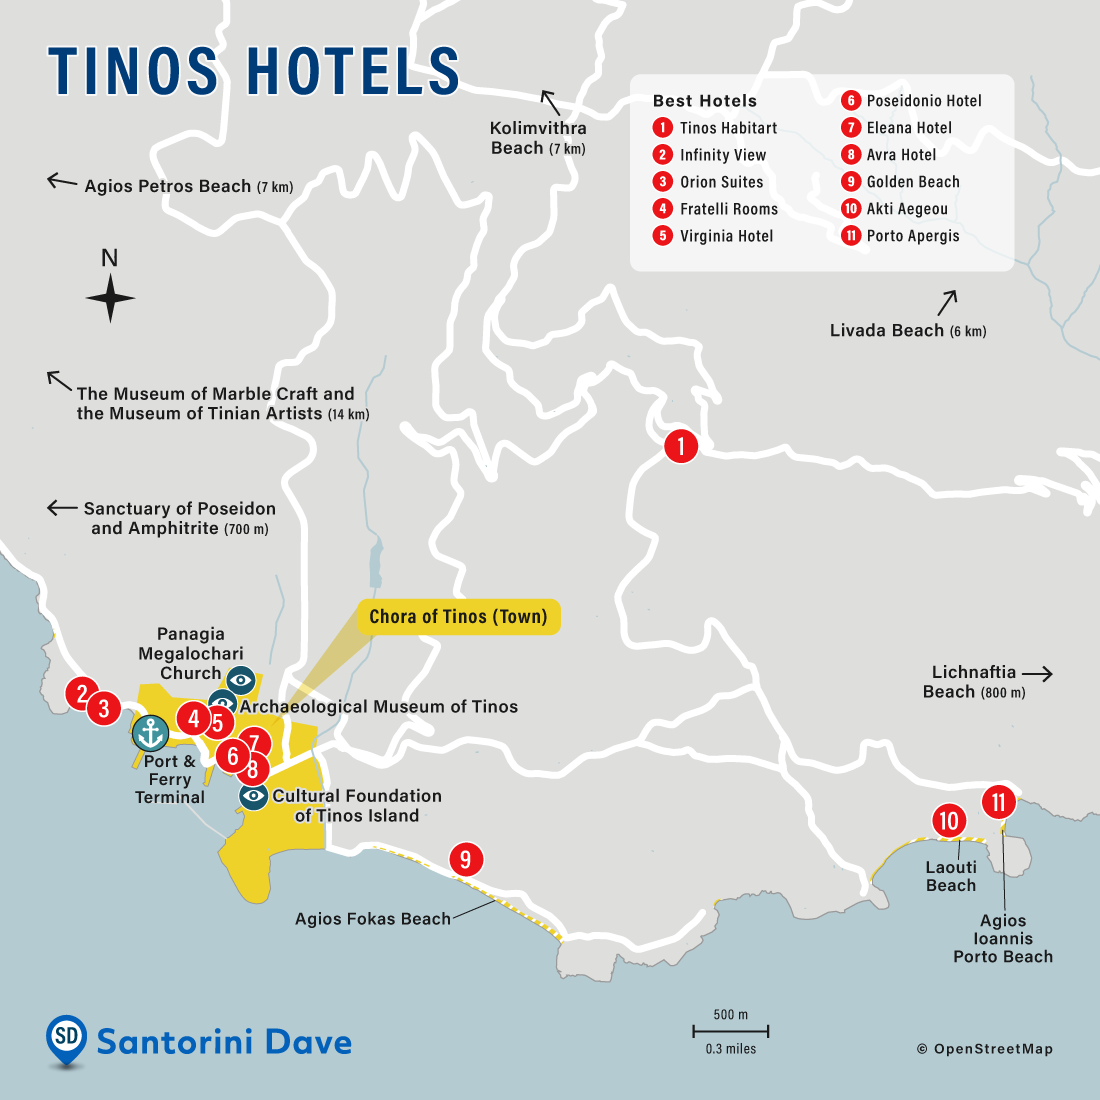 Map of best hotels, beaches, and things to do in Tinos, Greece